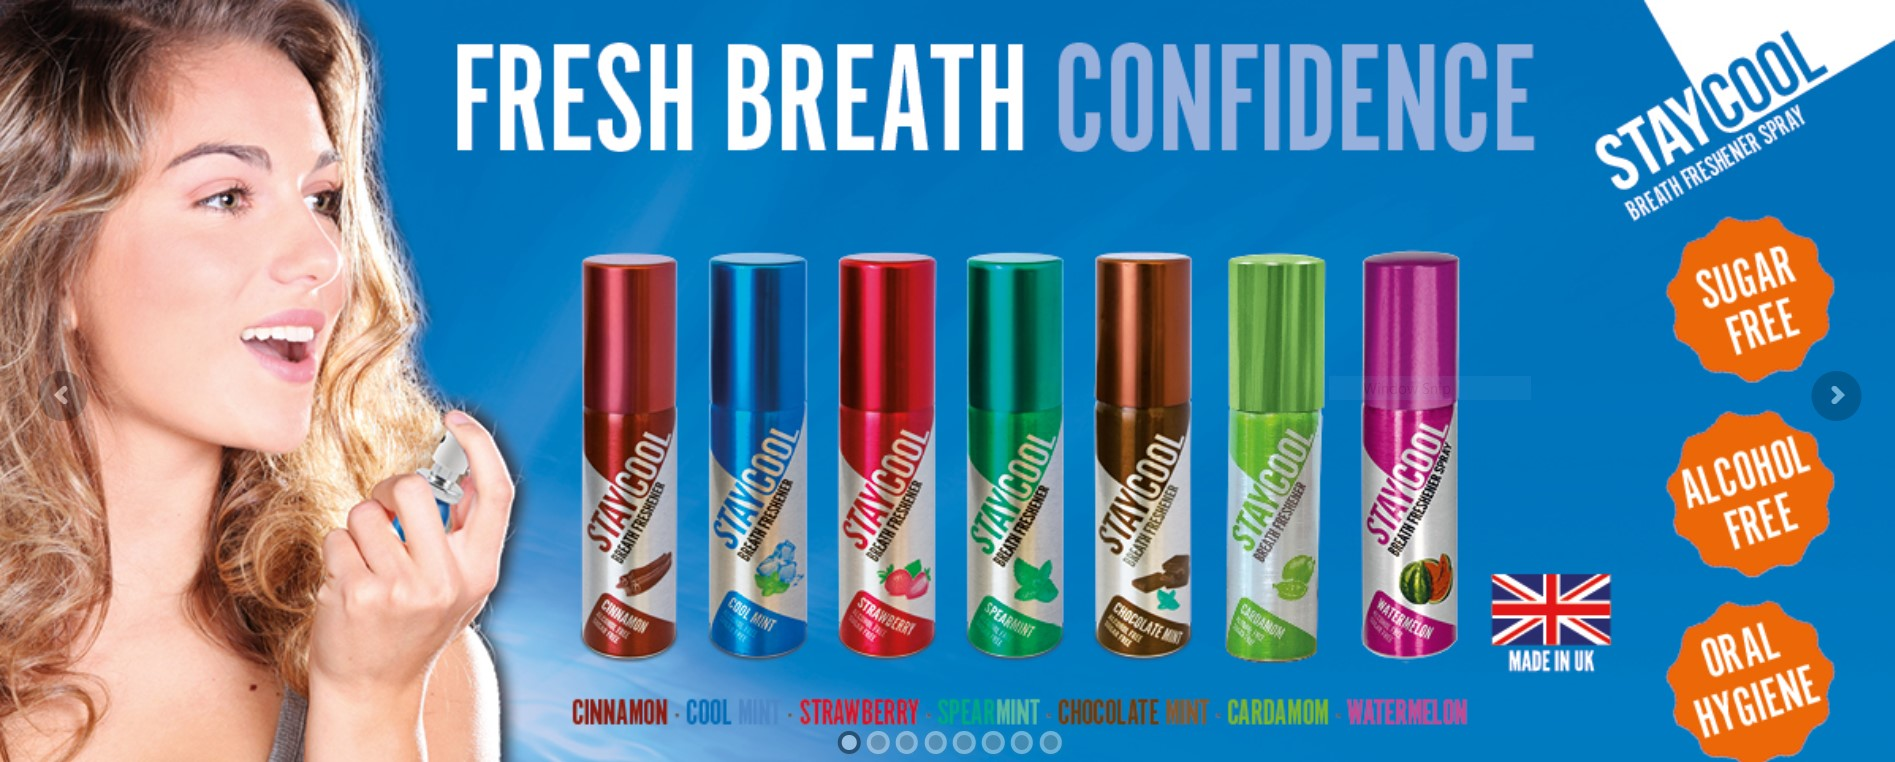 STAYCOOL Breath Freshener Single Cans